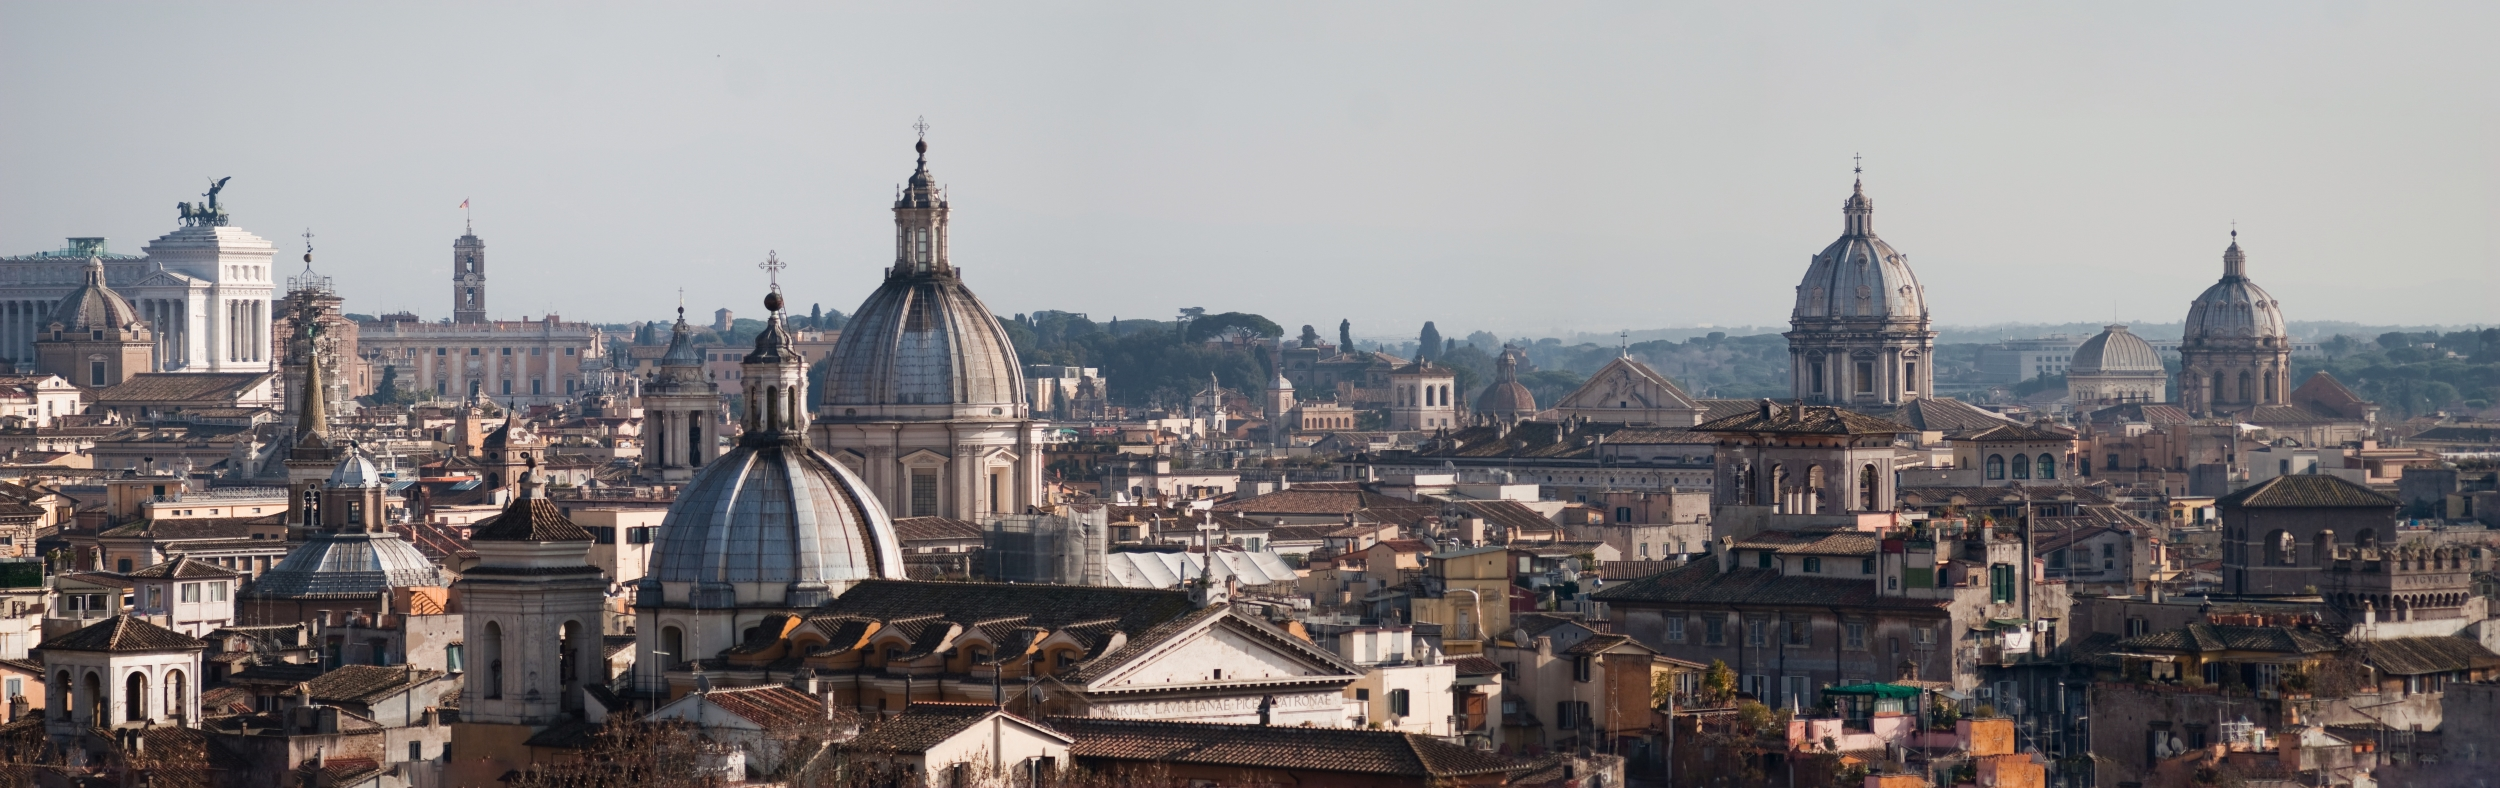 6th International OCT A And Advances In Congress Rome